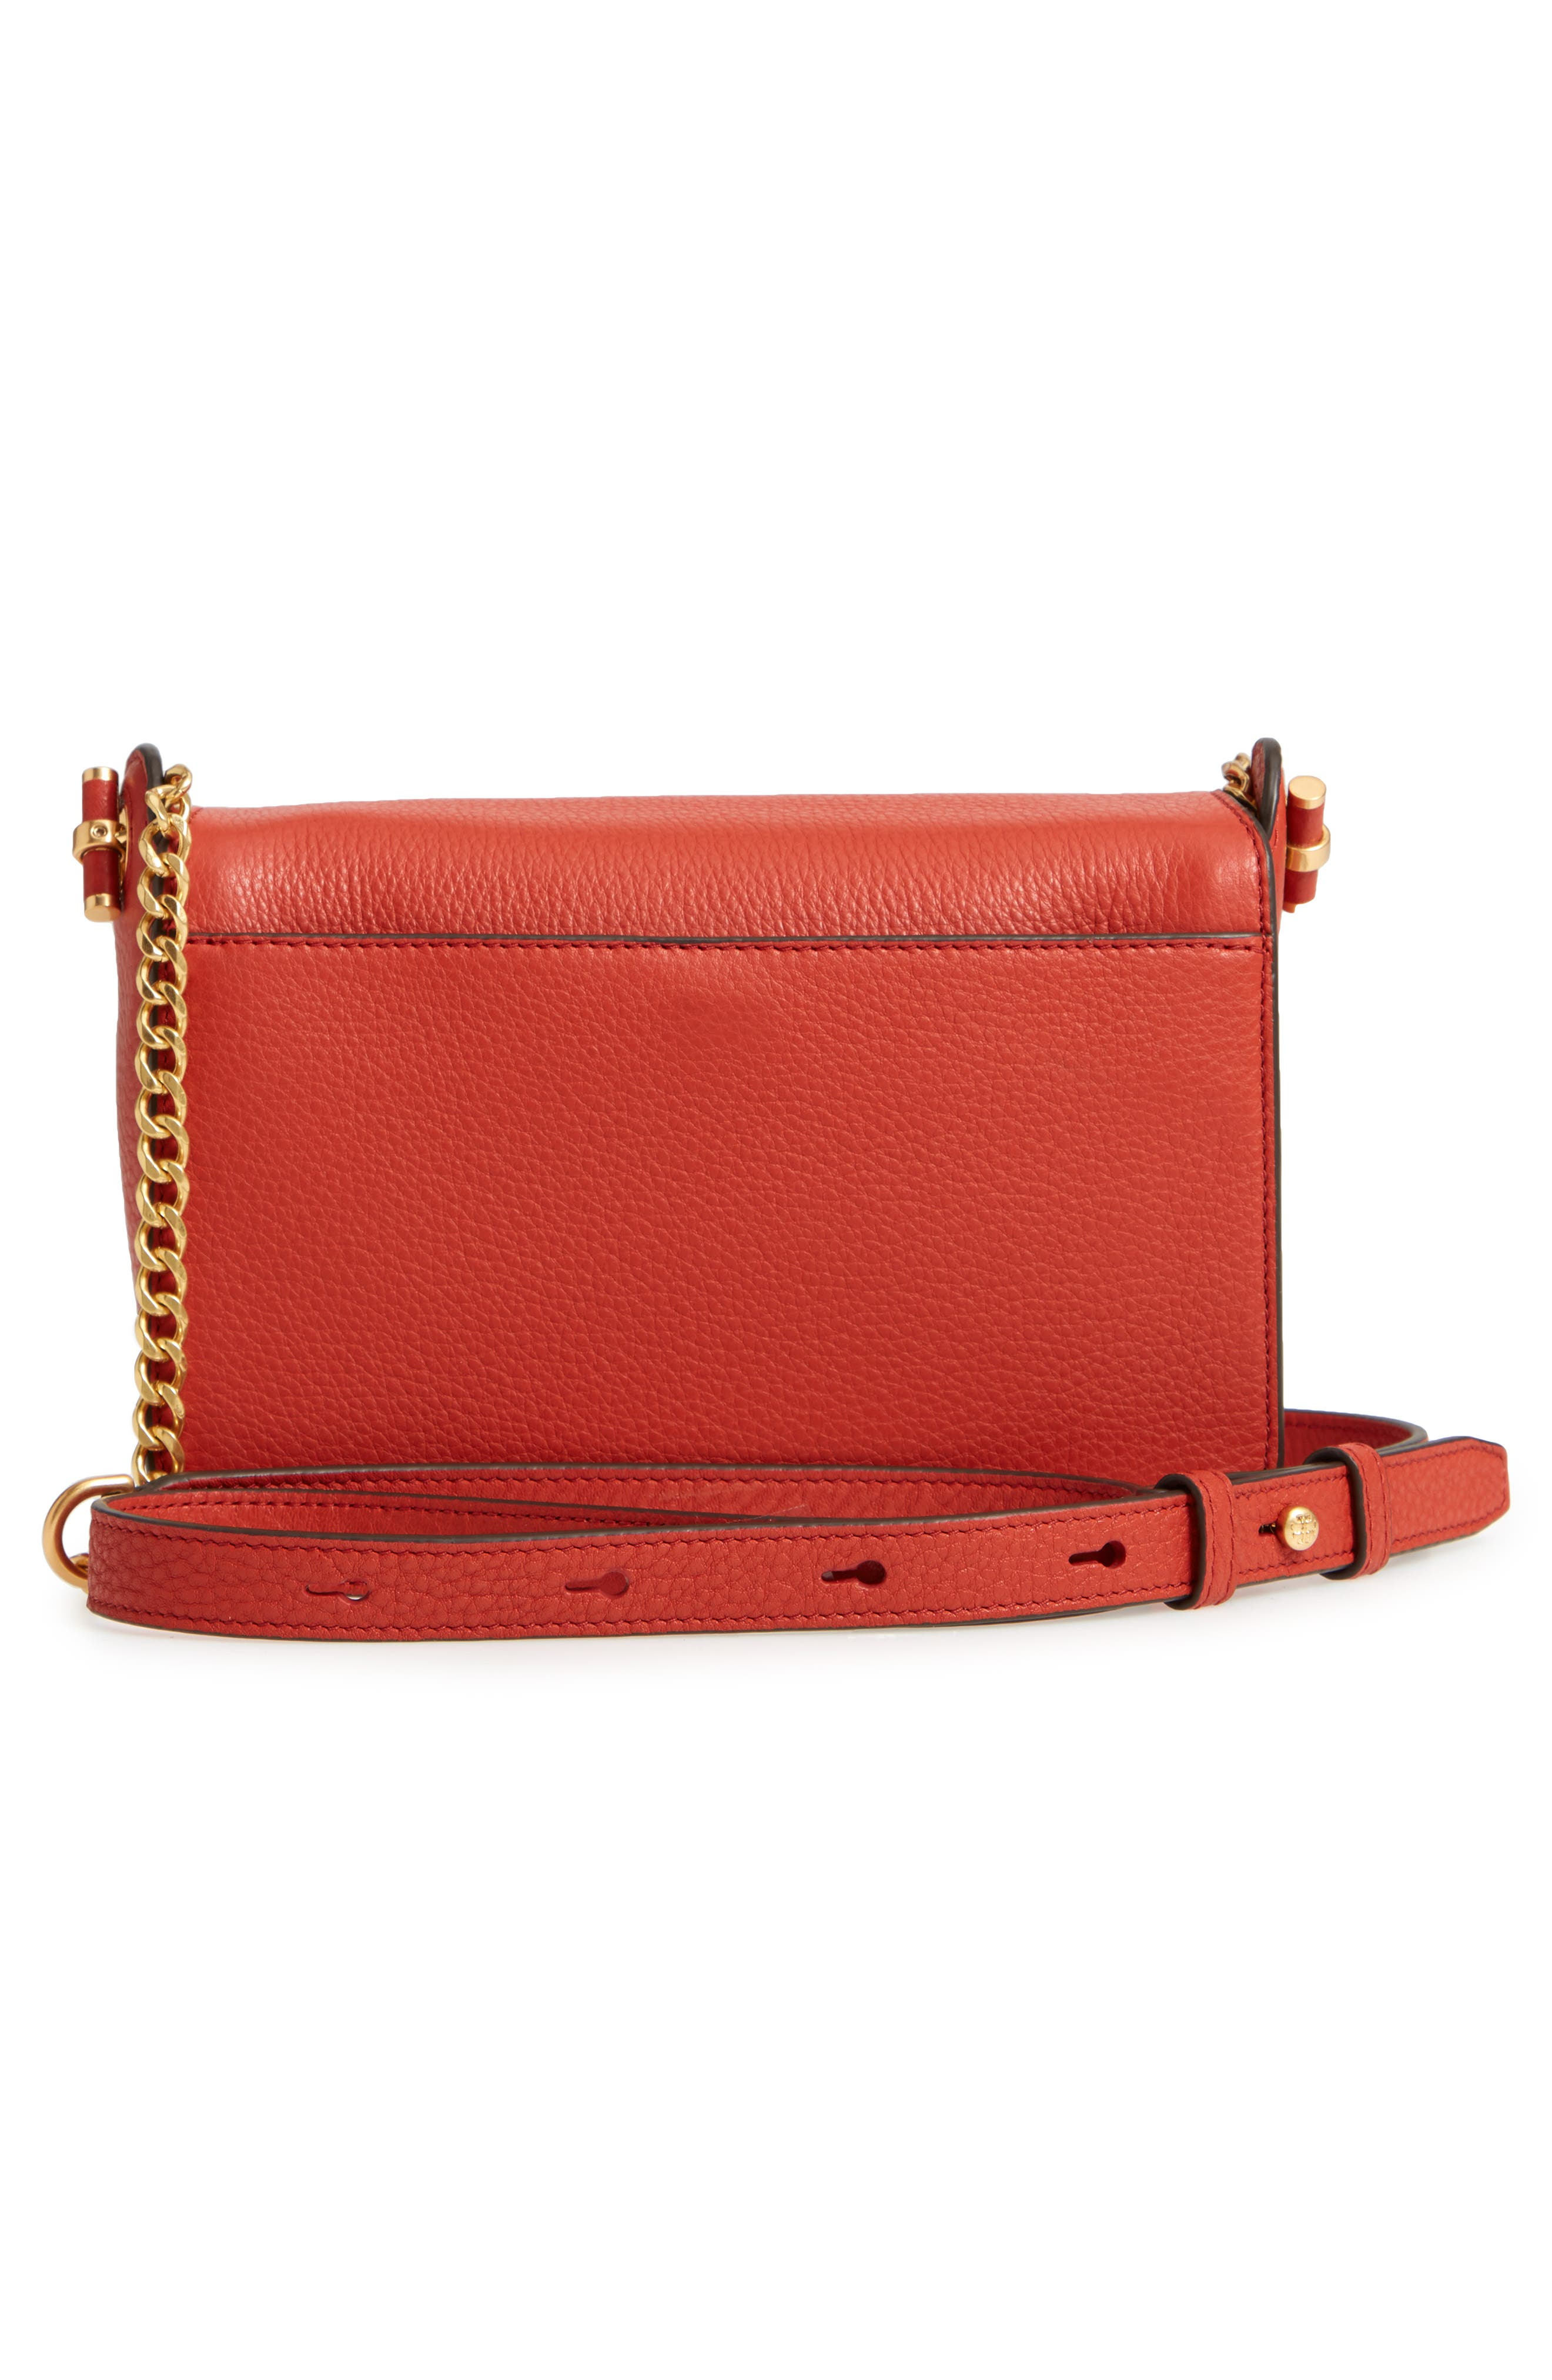 Chelsea Leather Crossbody Bag,                             Alternate thumbnail 3, color,                             Kola